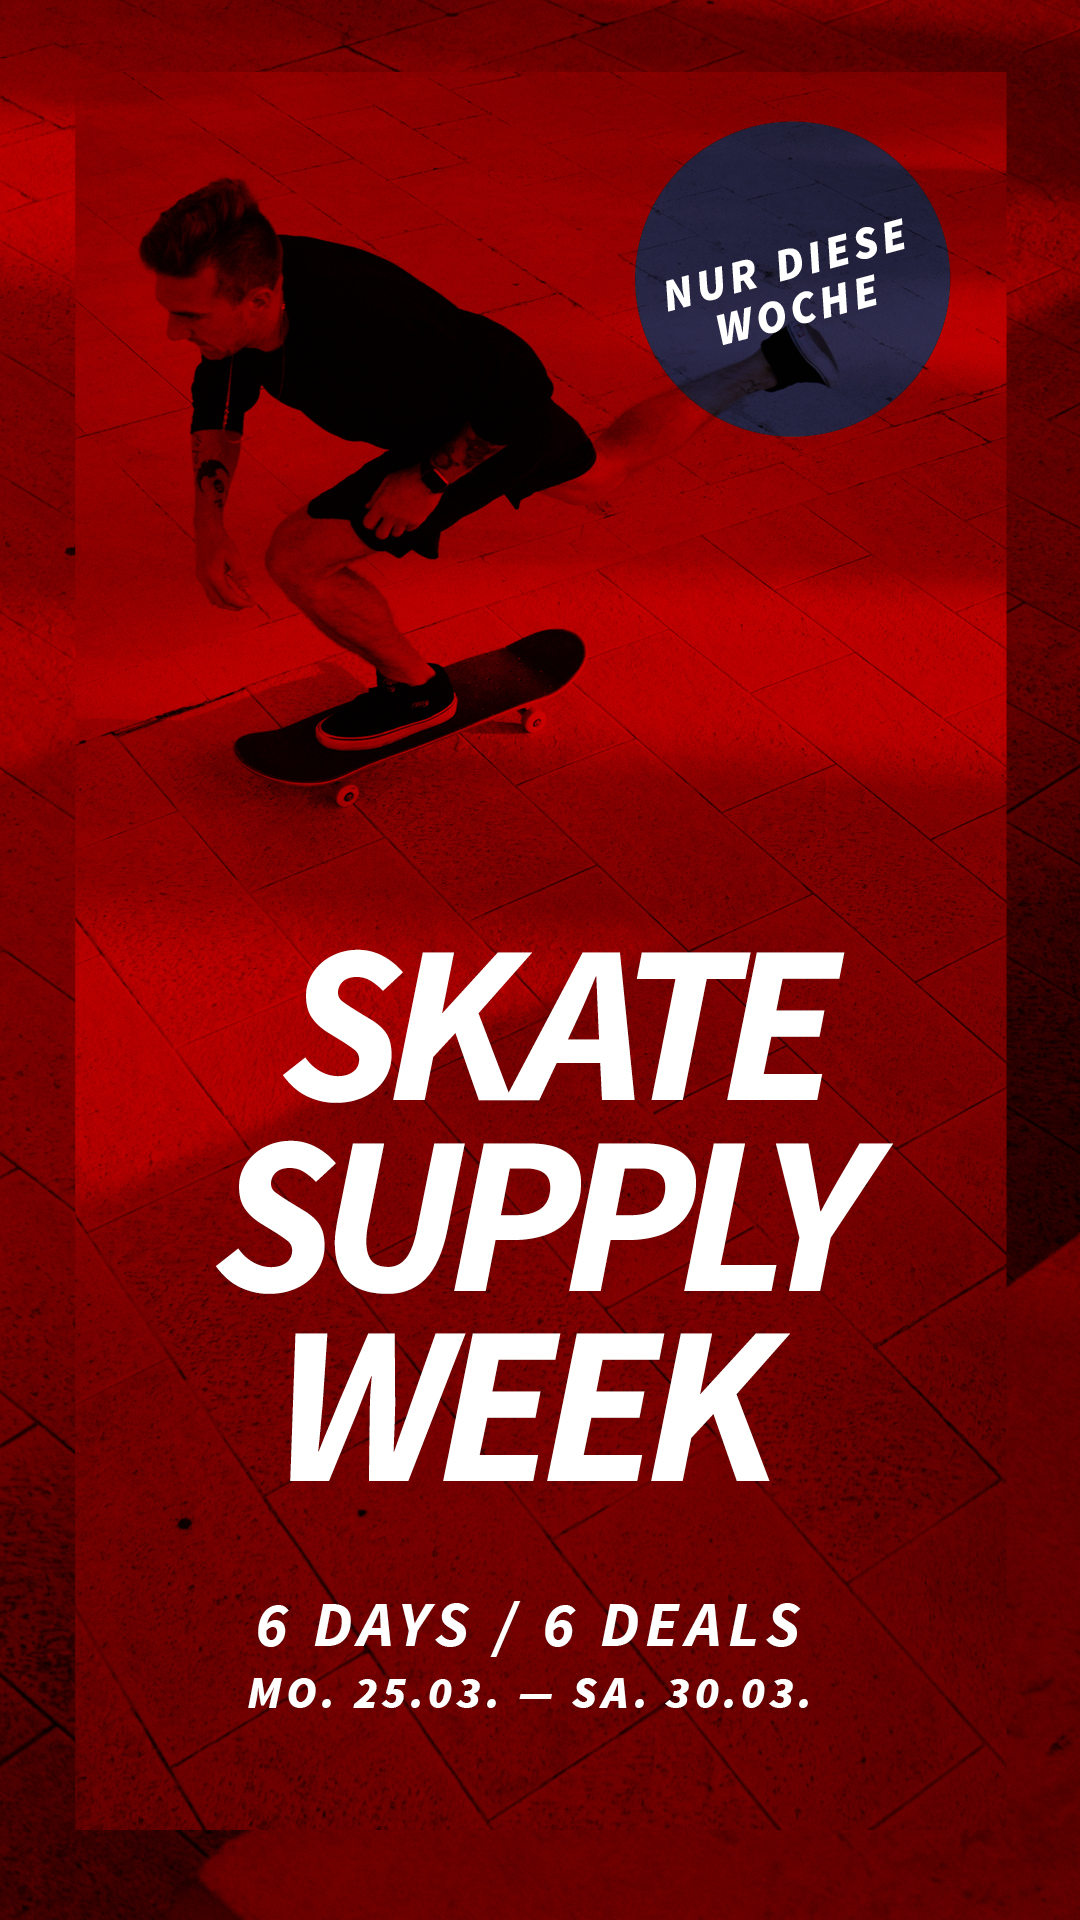 Skate_Supply_Week_Plakat.jpg